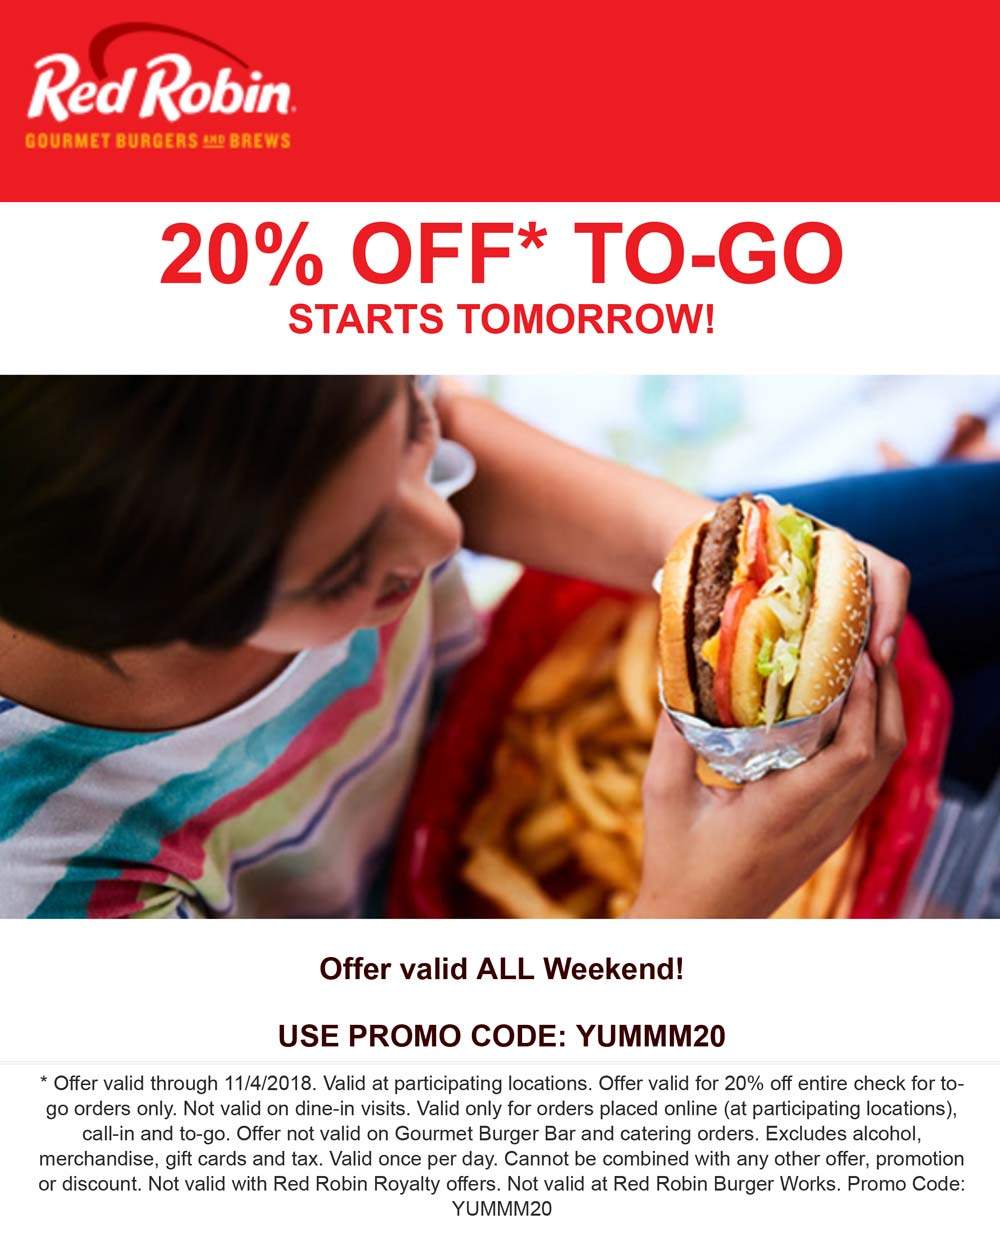 Red Robin Coupon January 2020 20% off to-go at Red Robin restaurants via promo code YUMMM20